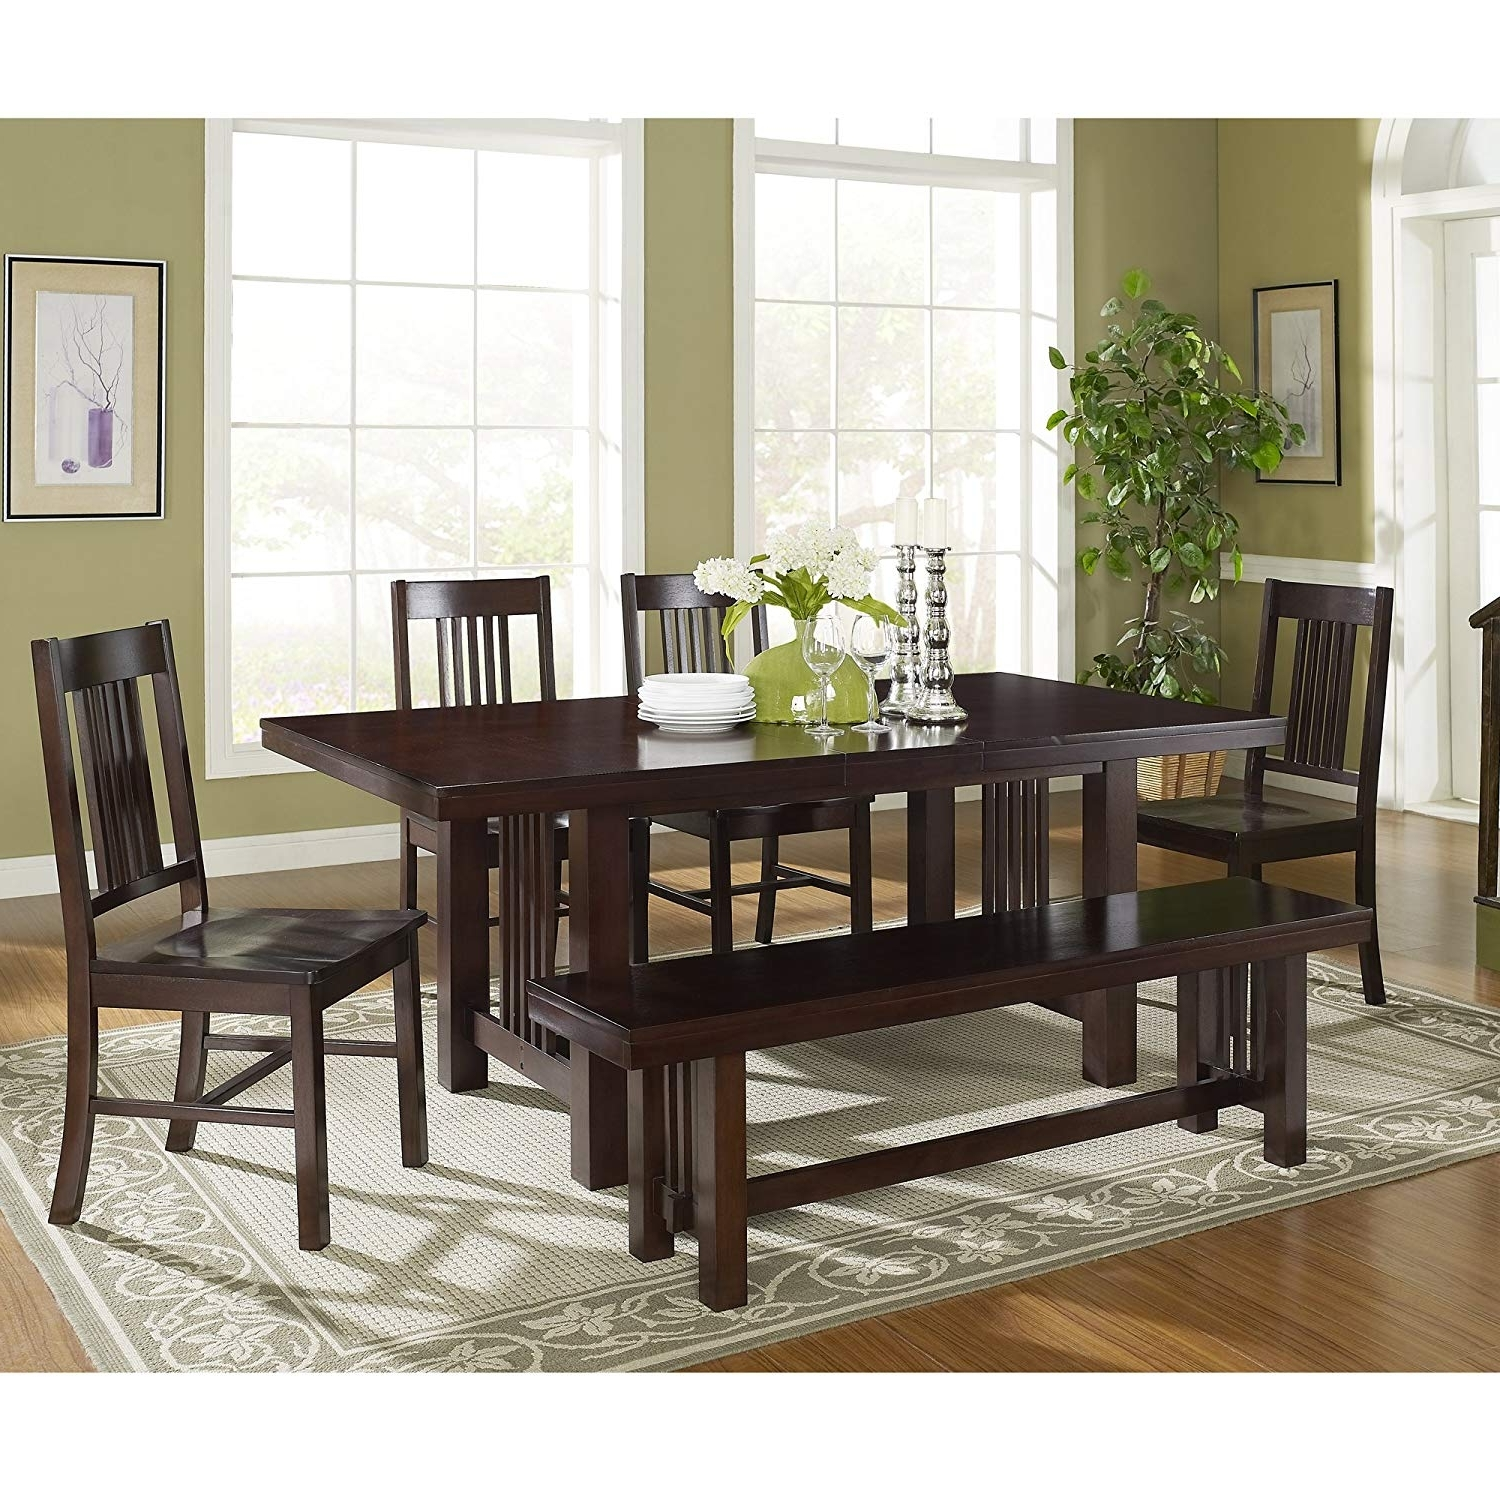 Most Popular Patterson 6 Piece Dining Sets Pertaining To Amazon – 6 Piece Solid Wood Dining Set, Cappuccino – Table Benches (View 15 of 25)